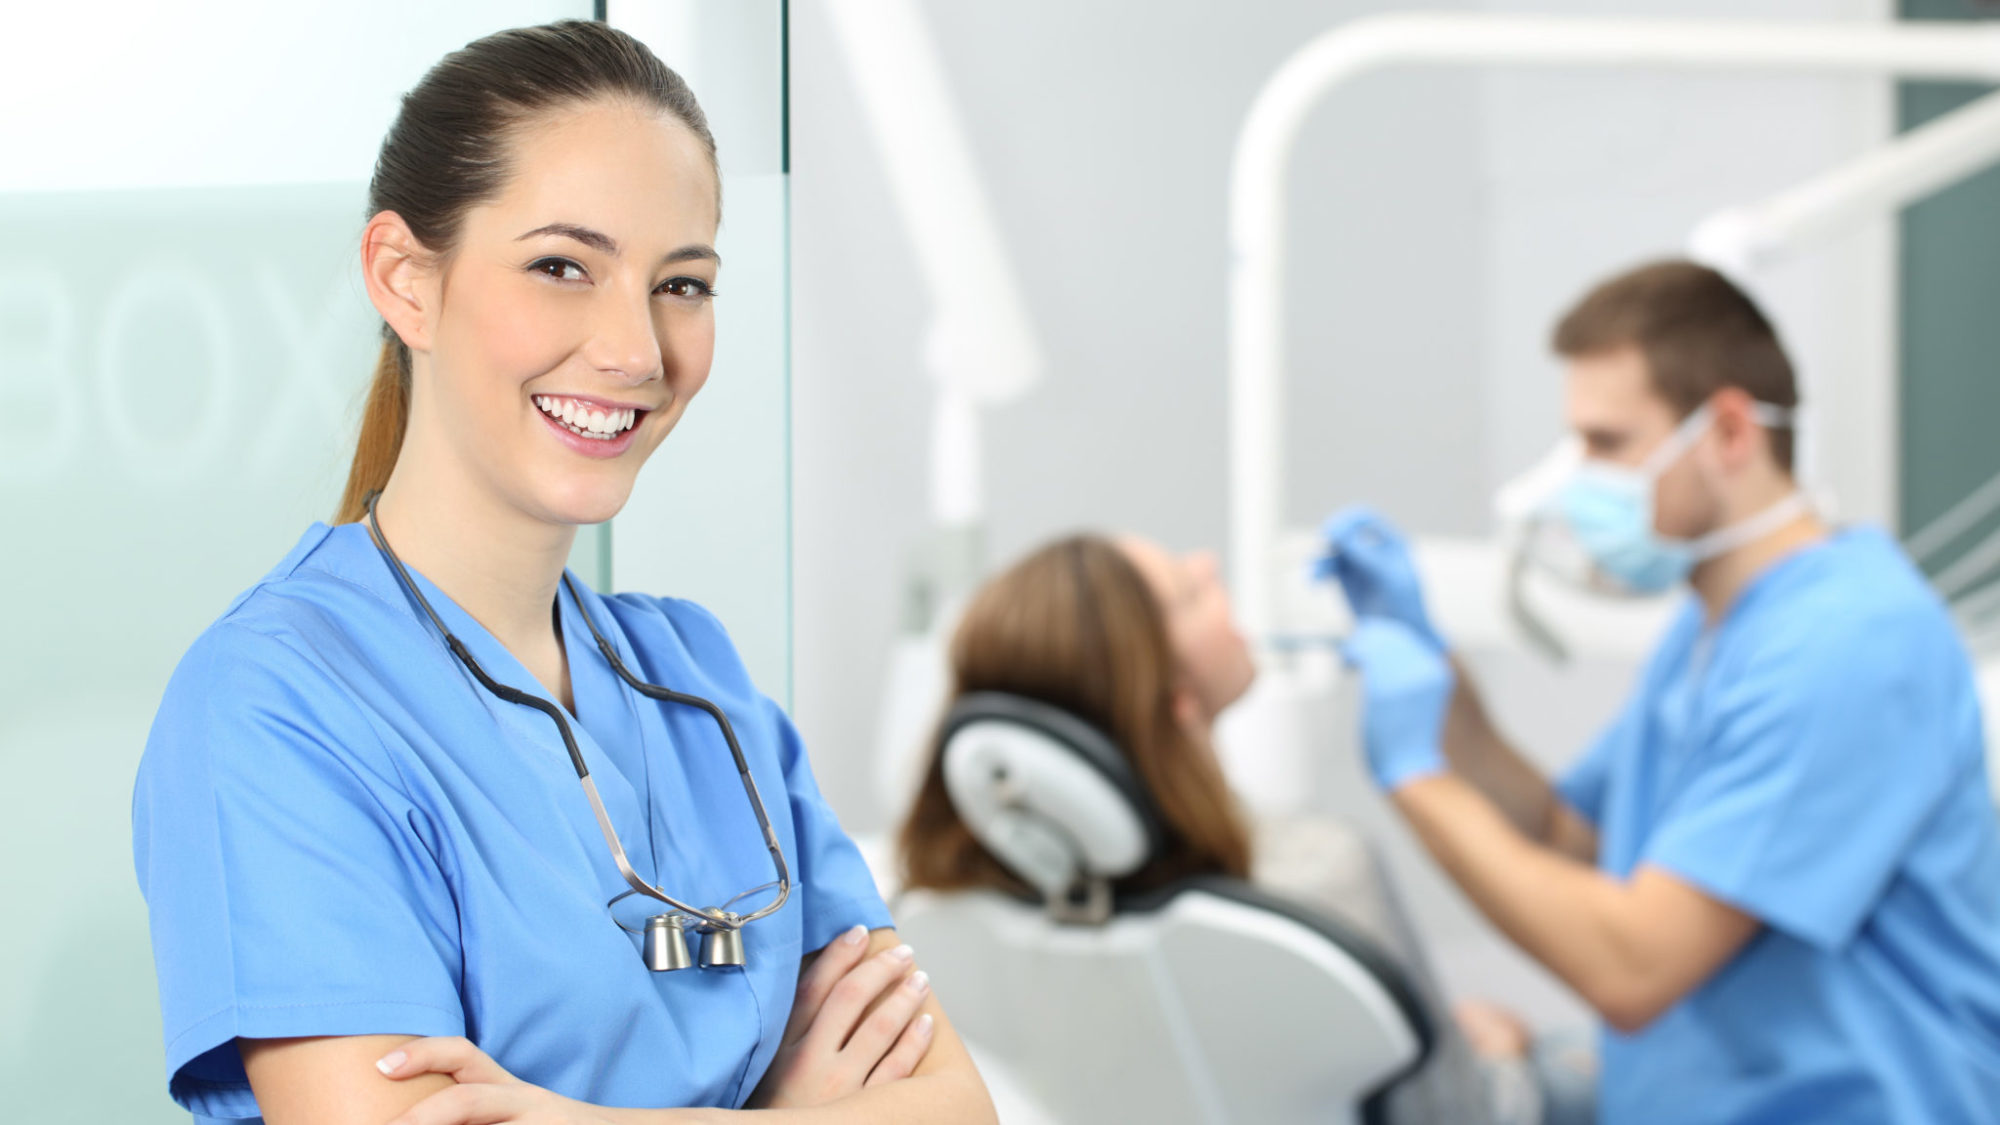 Abc Dental Care strategies to increase the profile of dental hygienists in